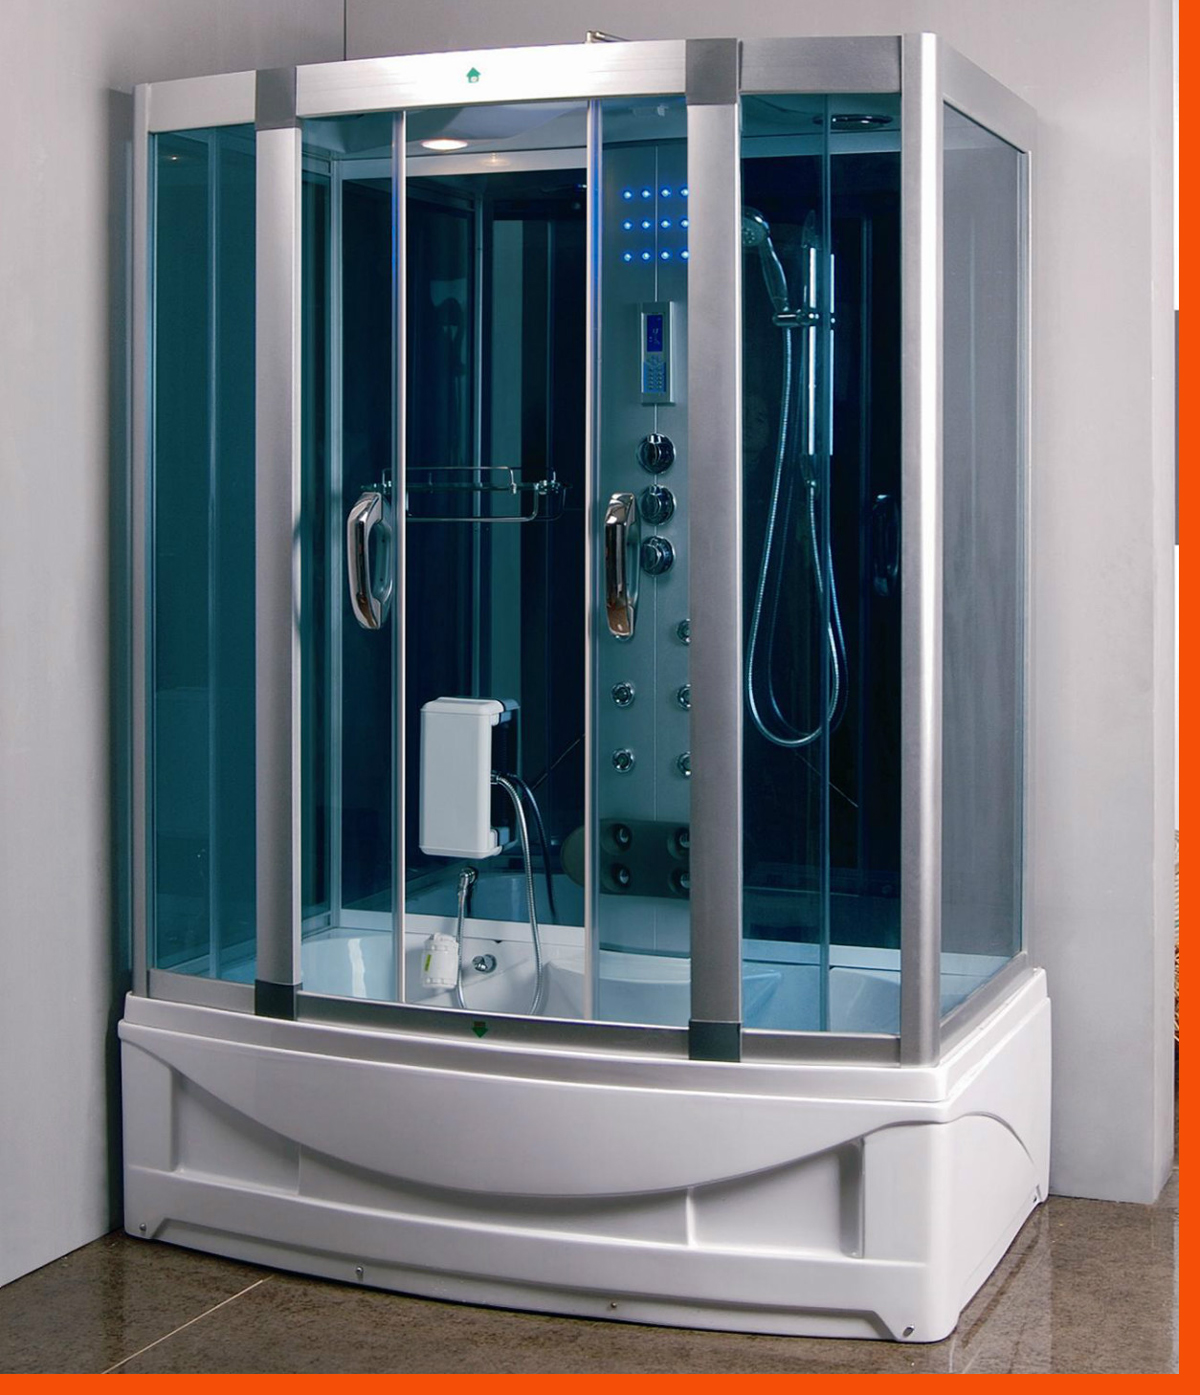 Bath And Shower Units Whirlpool Tub Jacuzzi Steam Shower Bath Led Multi Function